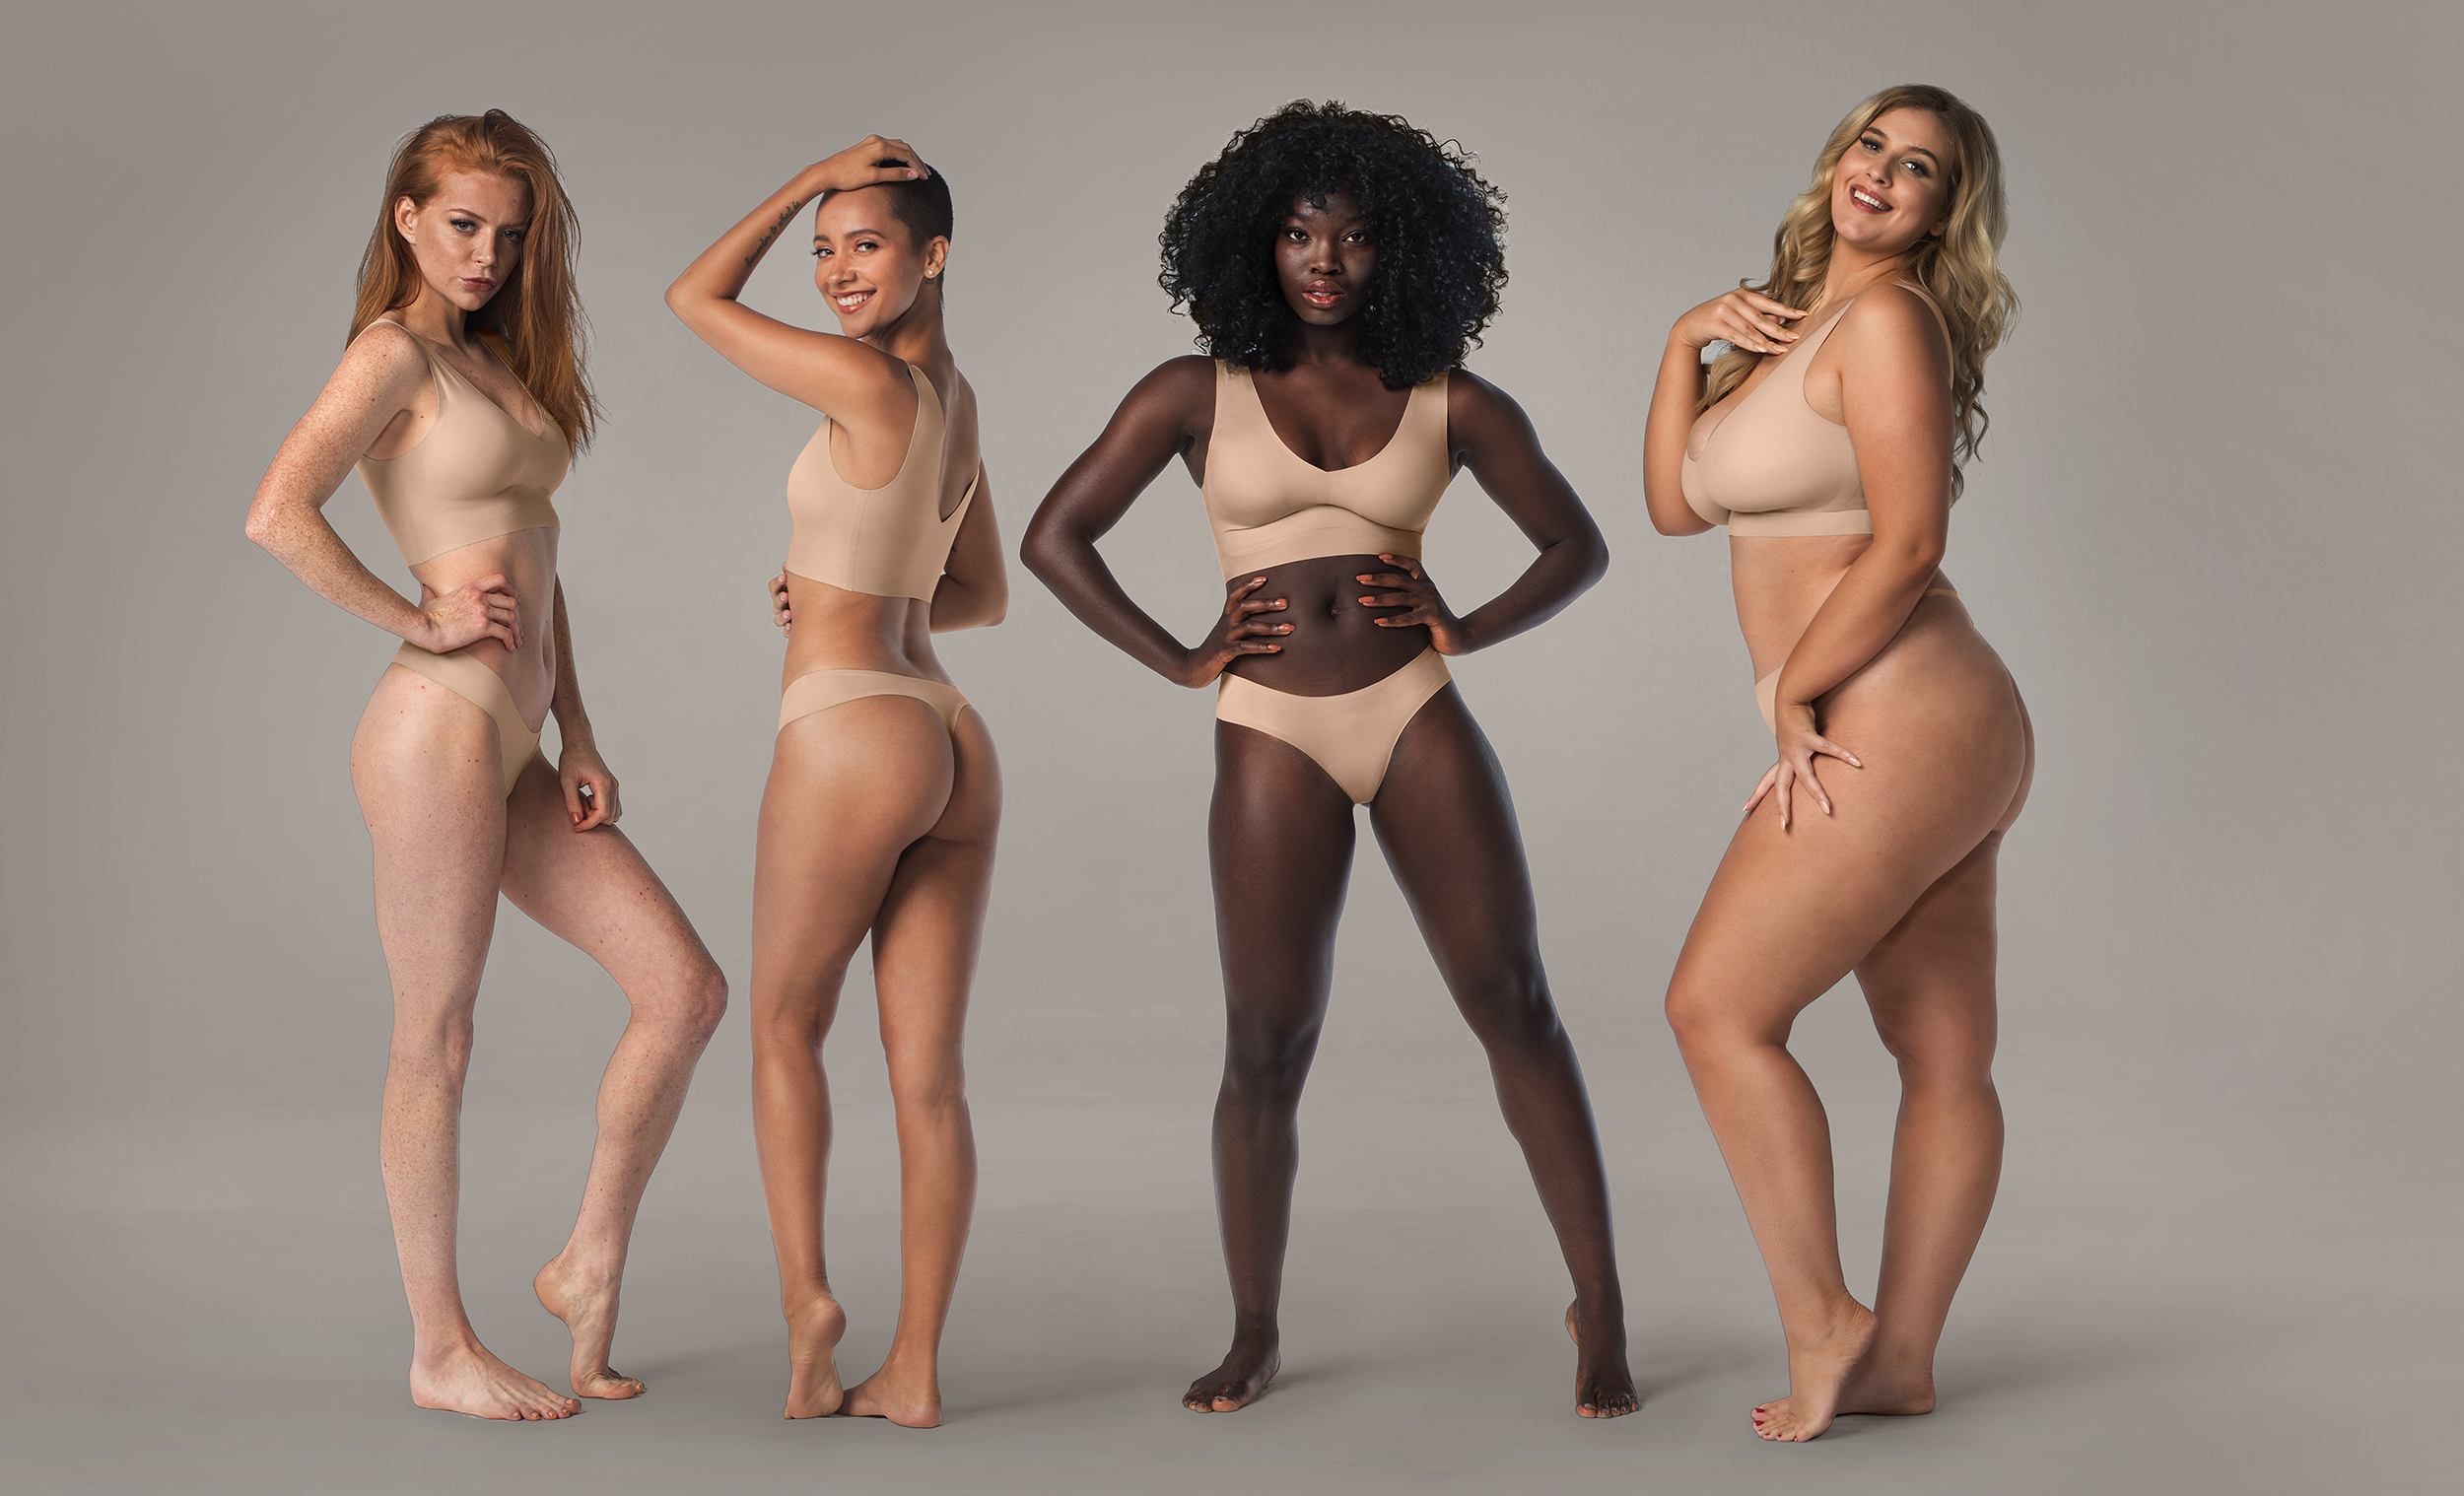 SV-Horizontal-Image-EBY-_0009_Copy of All Thongs Sizes Extended .jpg